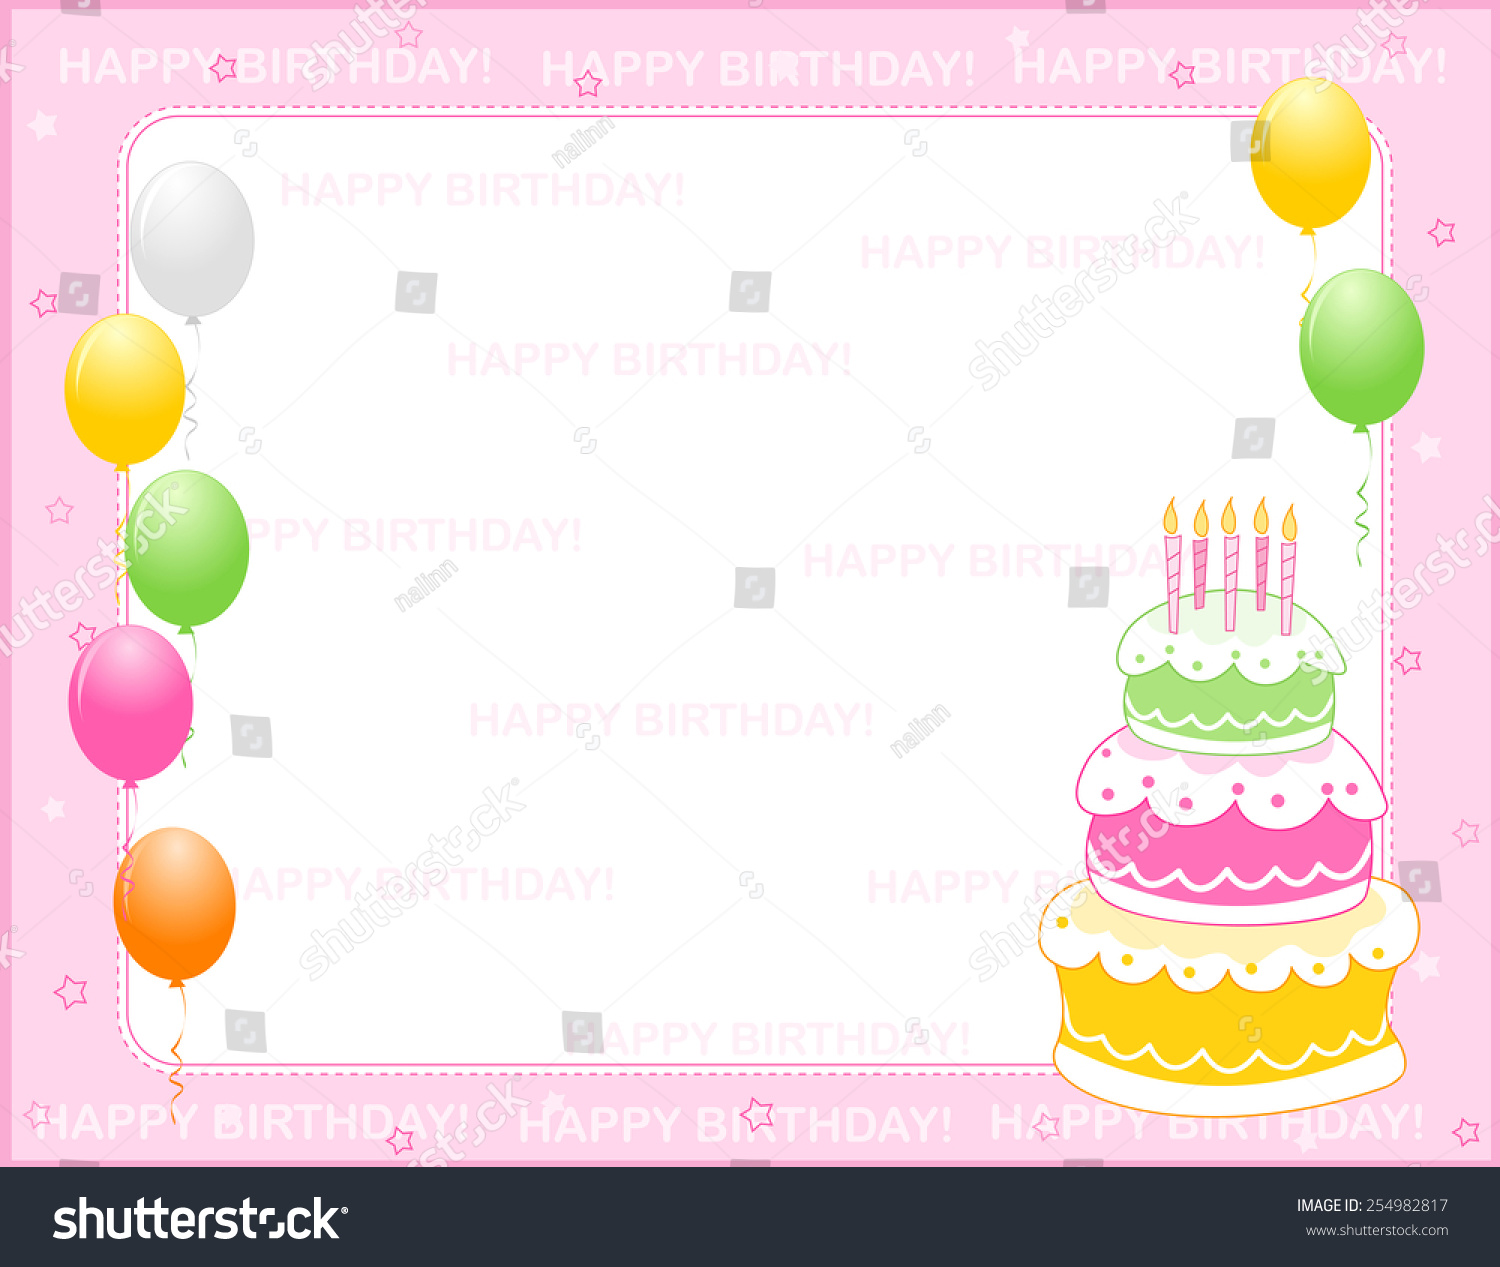 Colorful Girly Birthday Card Invitation Background Stock Vector